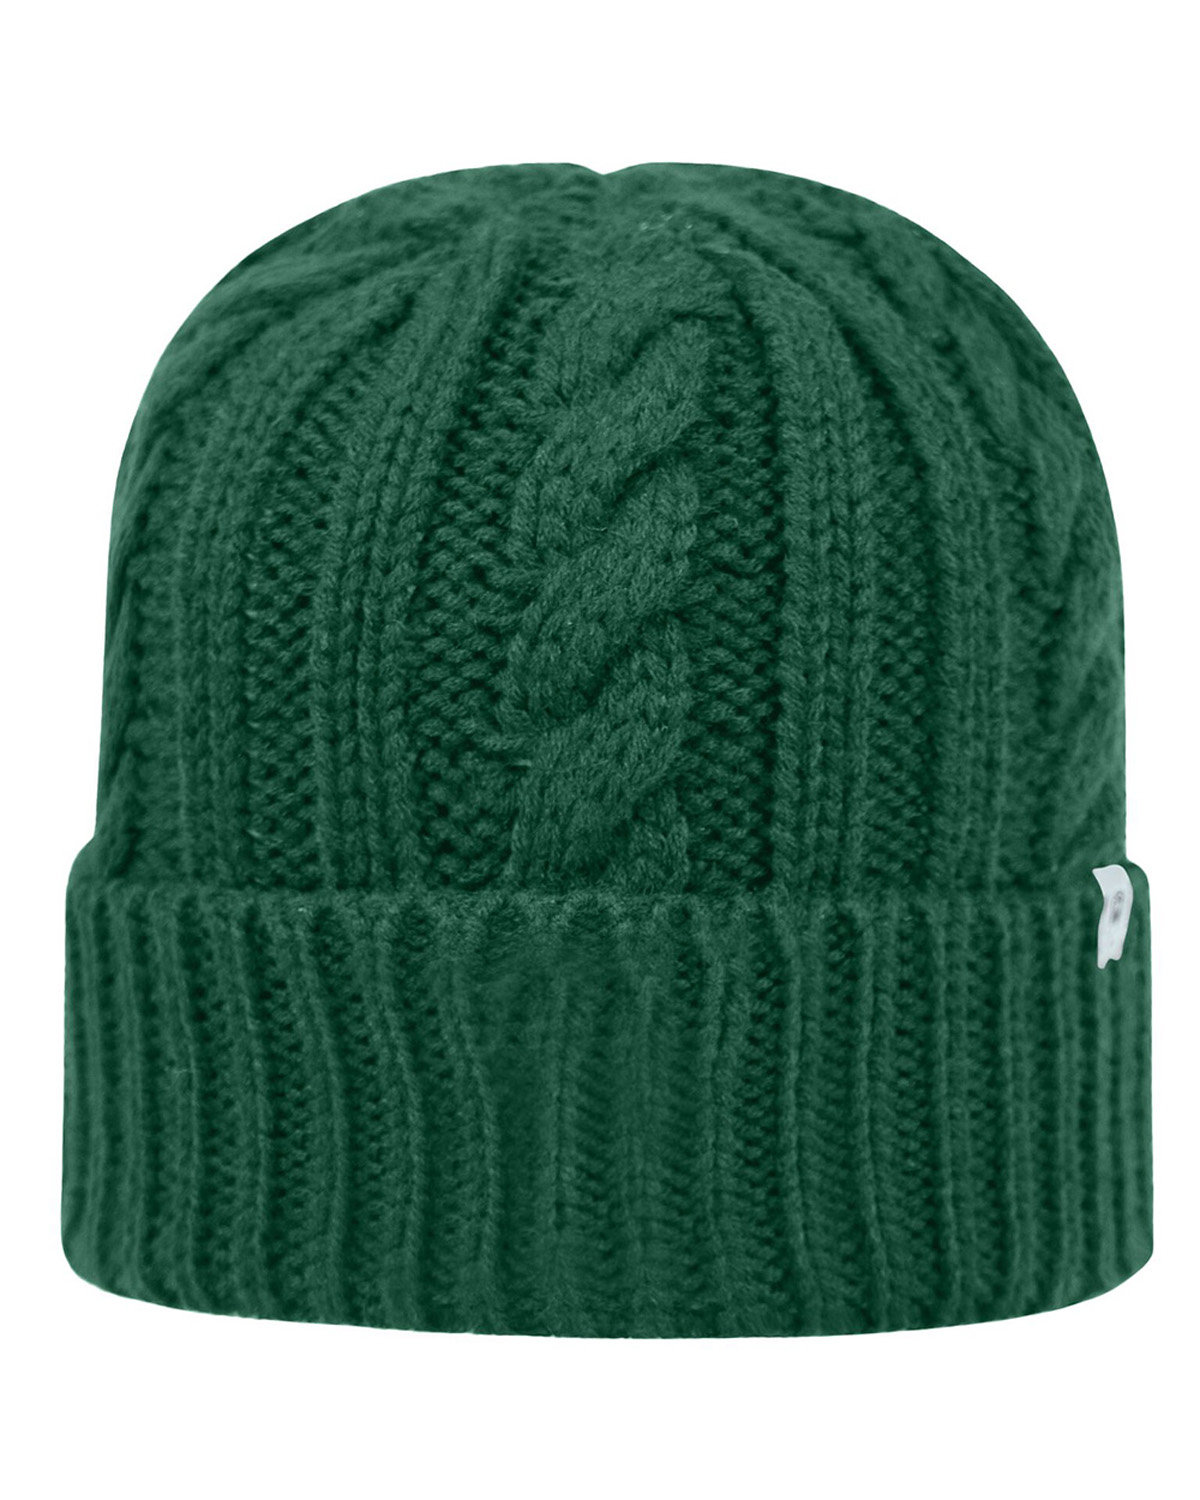 Top Of The World Adult Empire Knit Cap FOREST